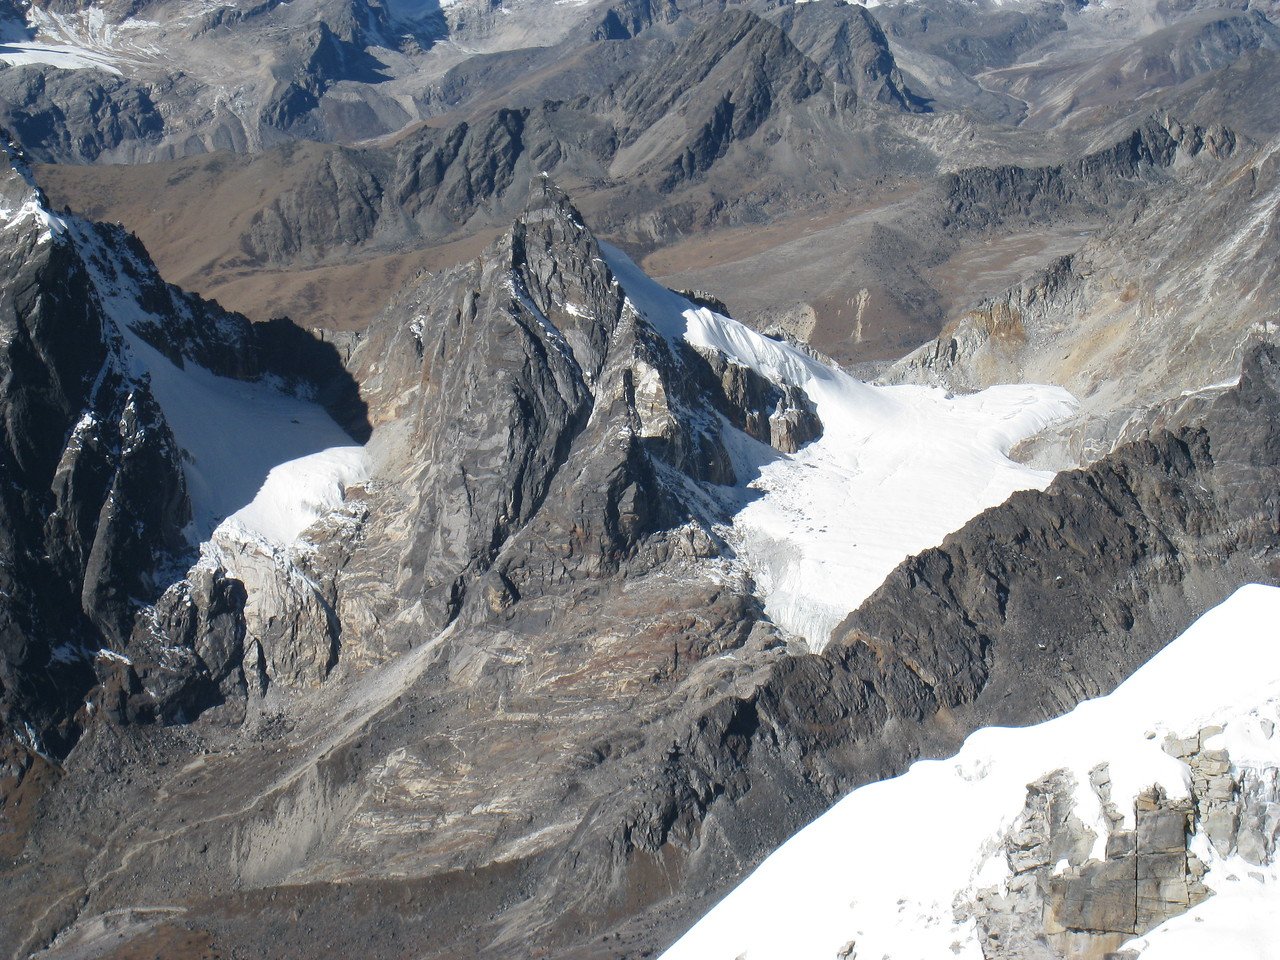 Looking down from summit of Lobuche East 6119m.